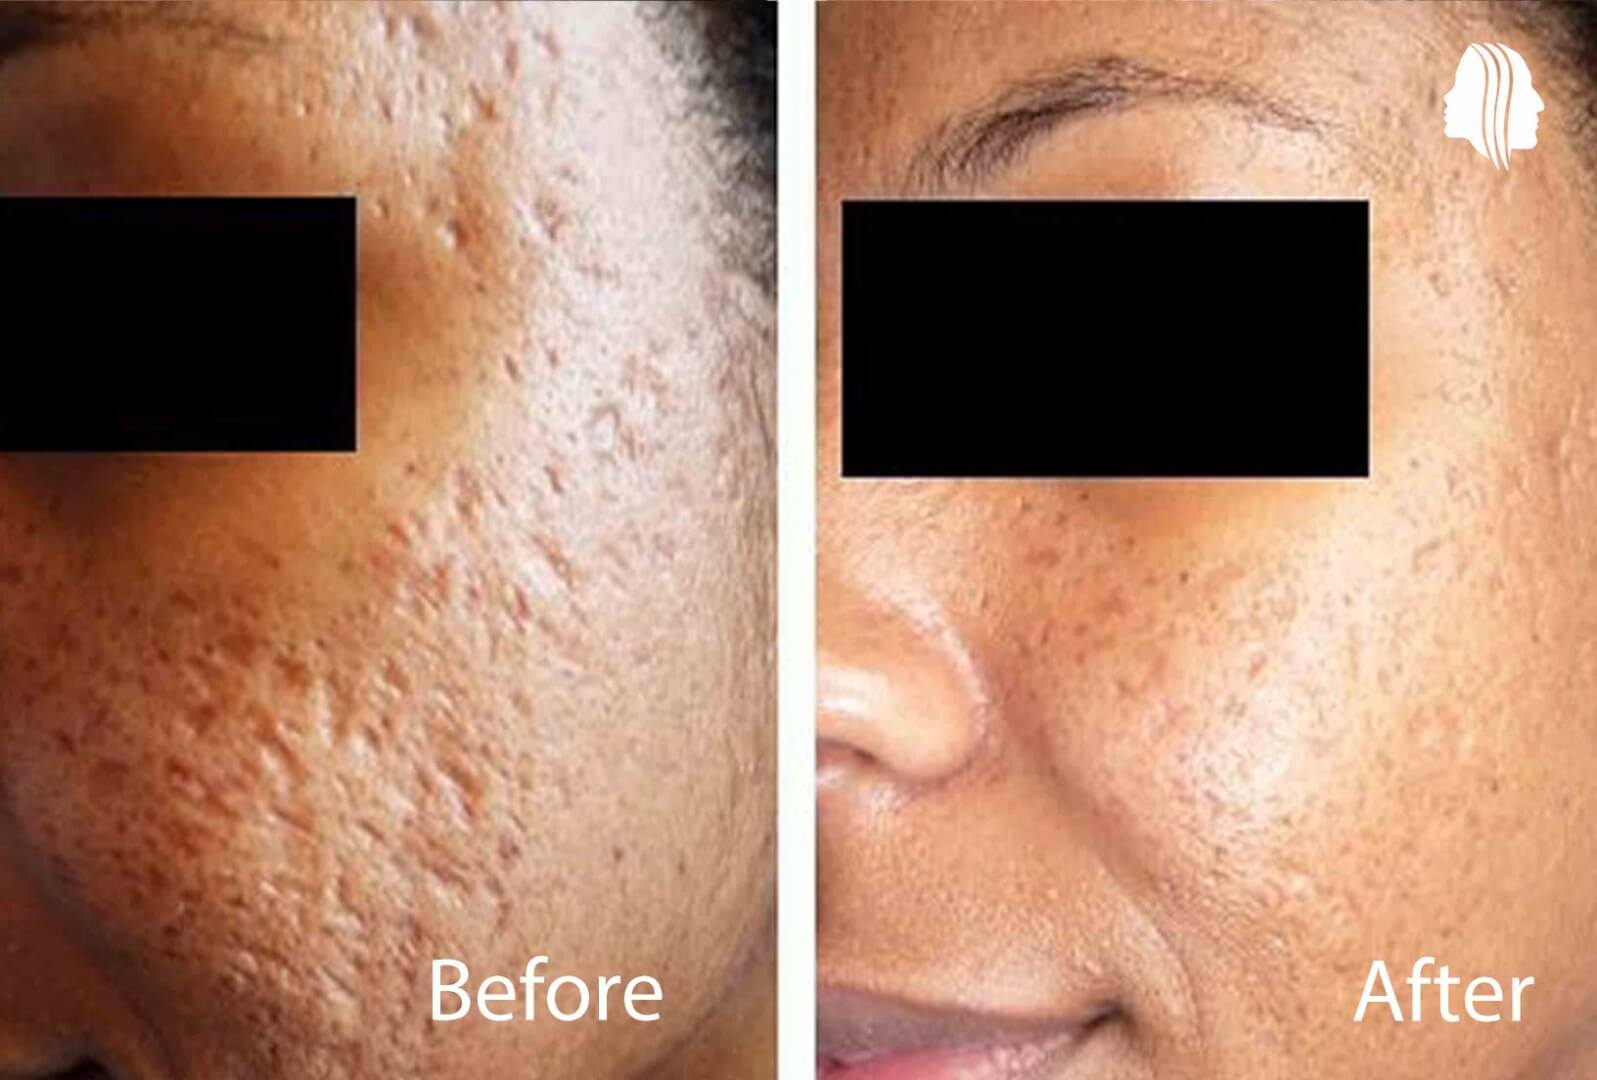 z25 PreP1ost in acne scar treatment